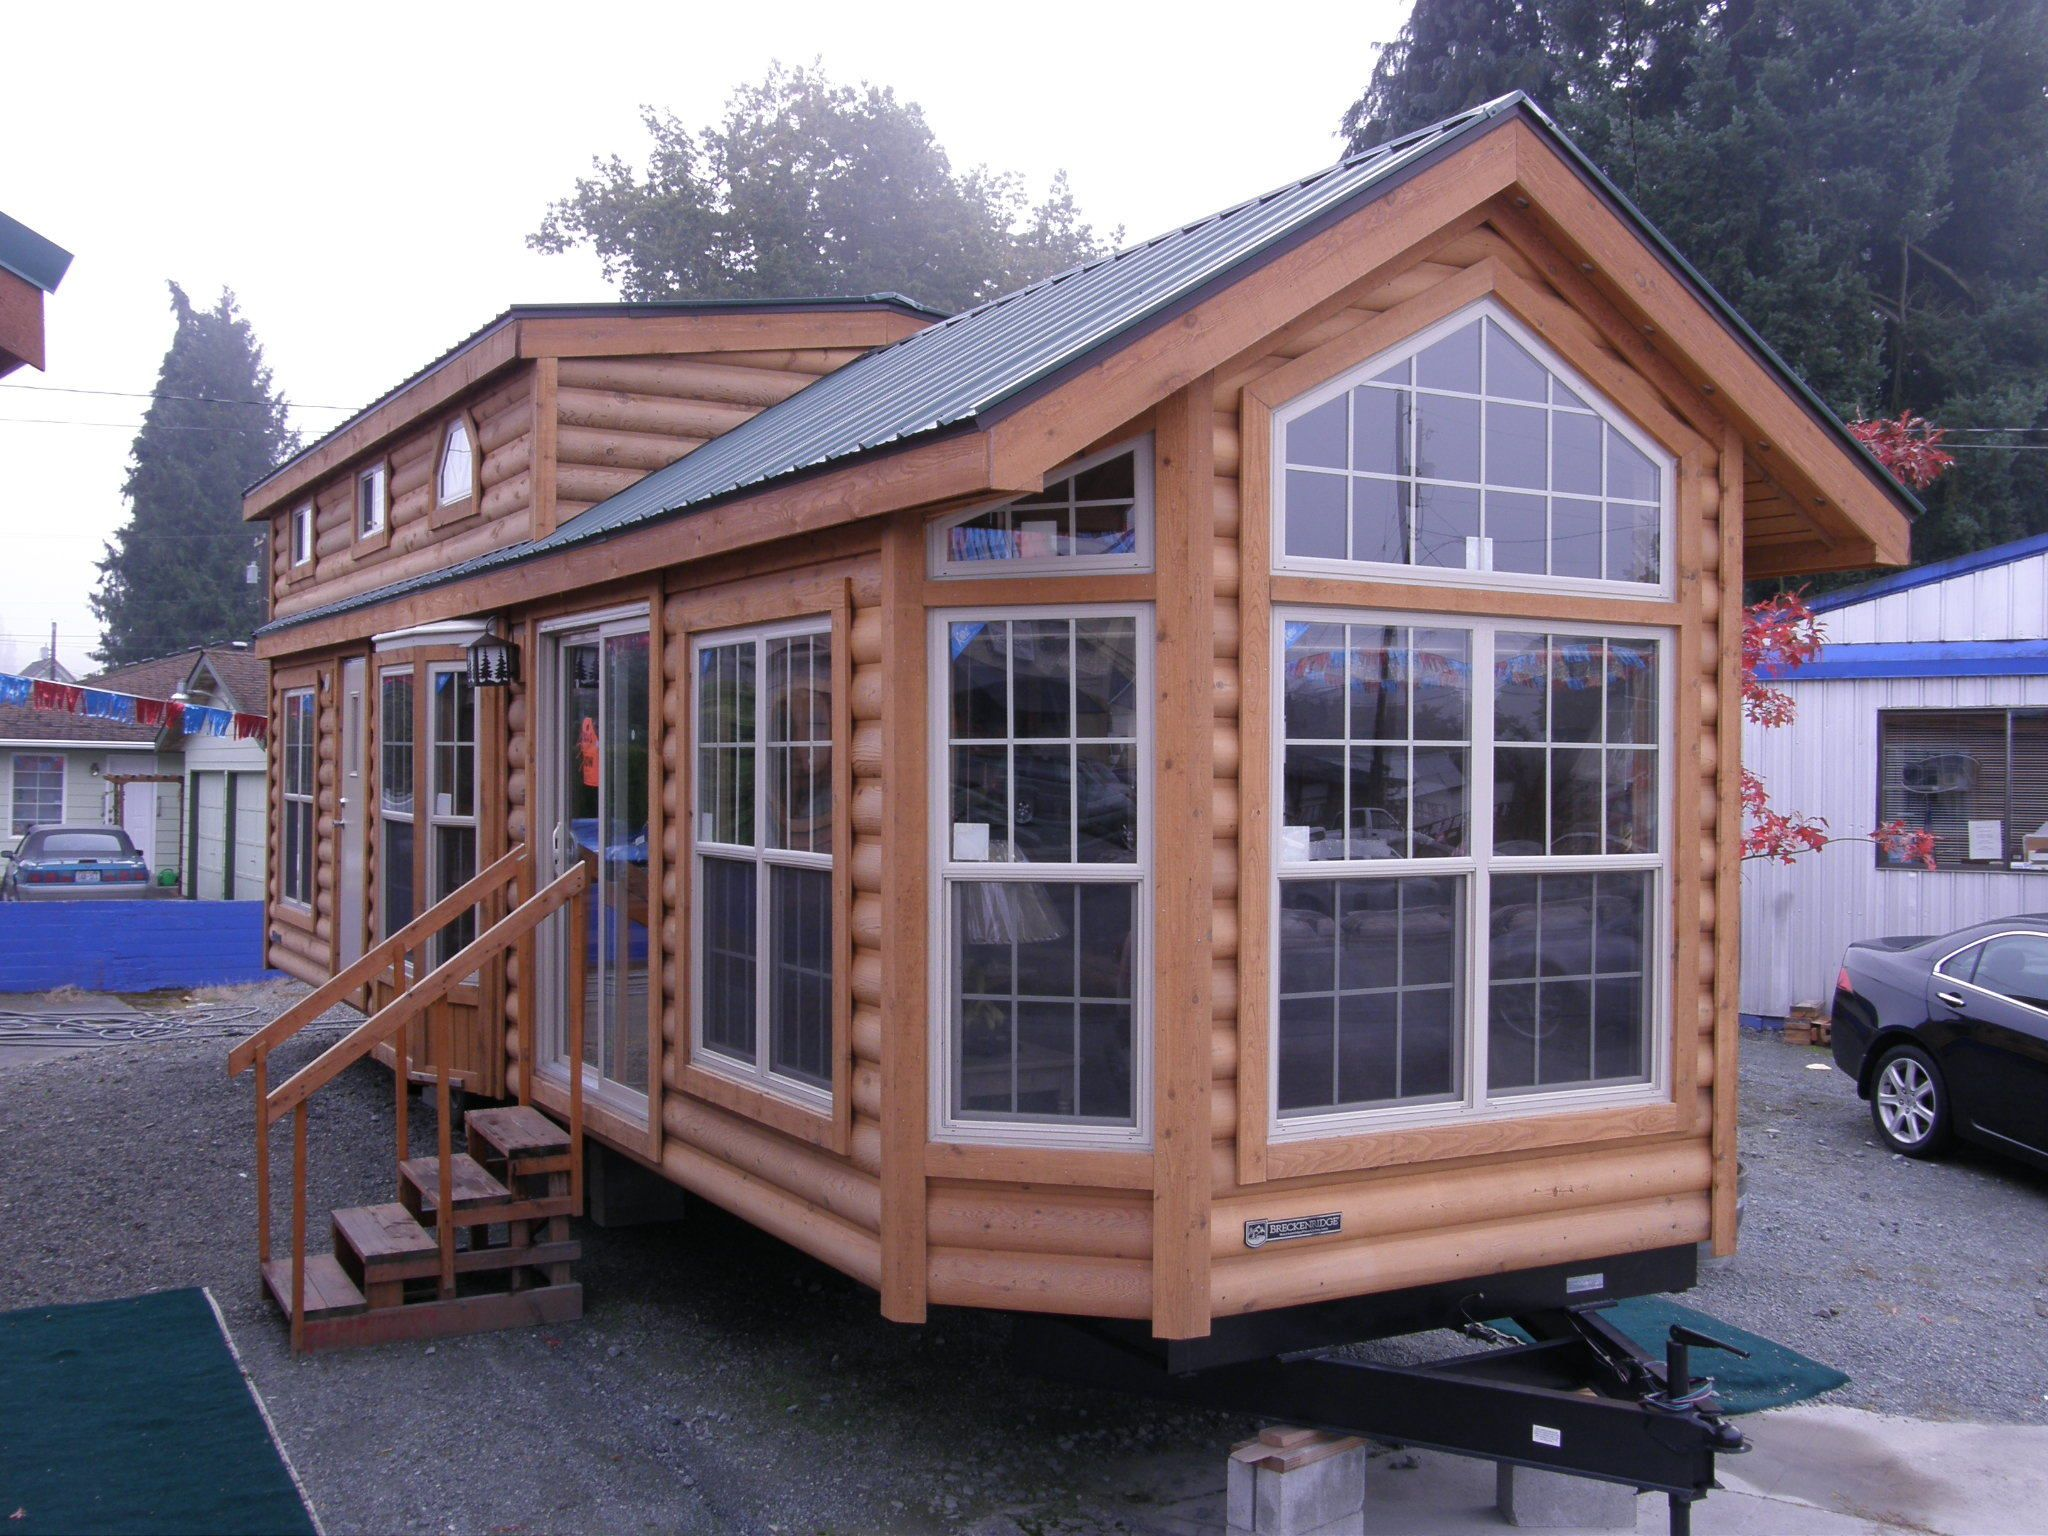 House On Wheels Craigslist Visit Open Big Tiny House On